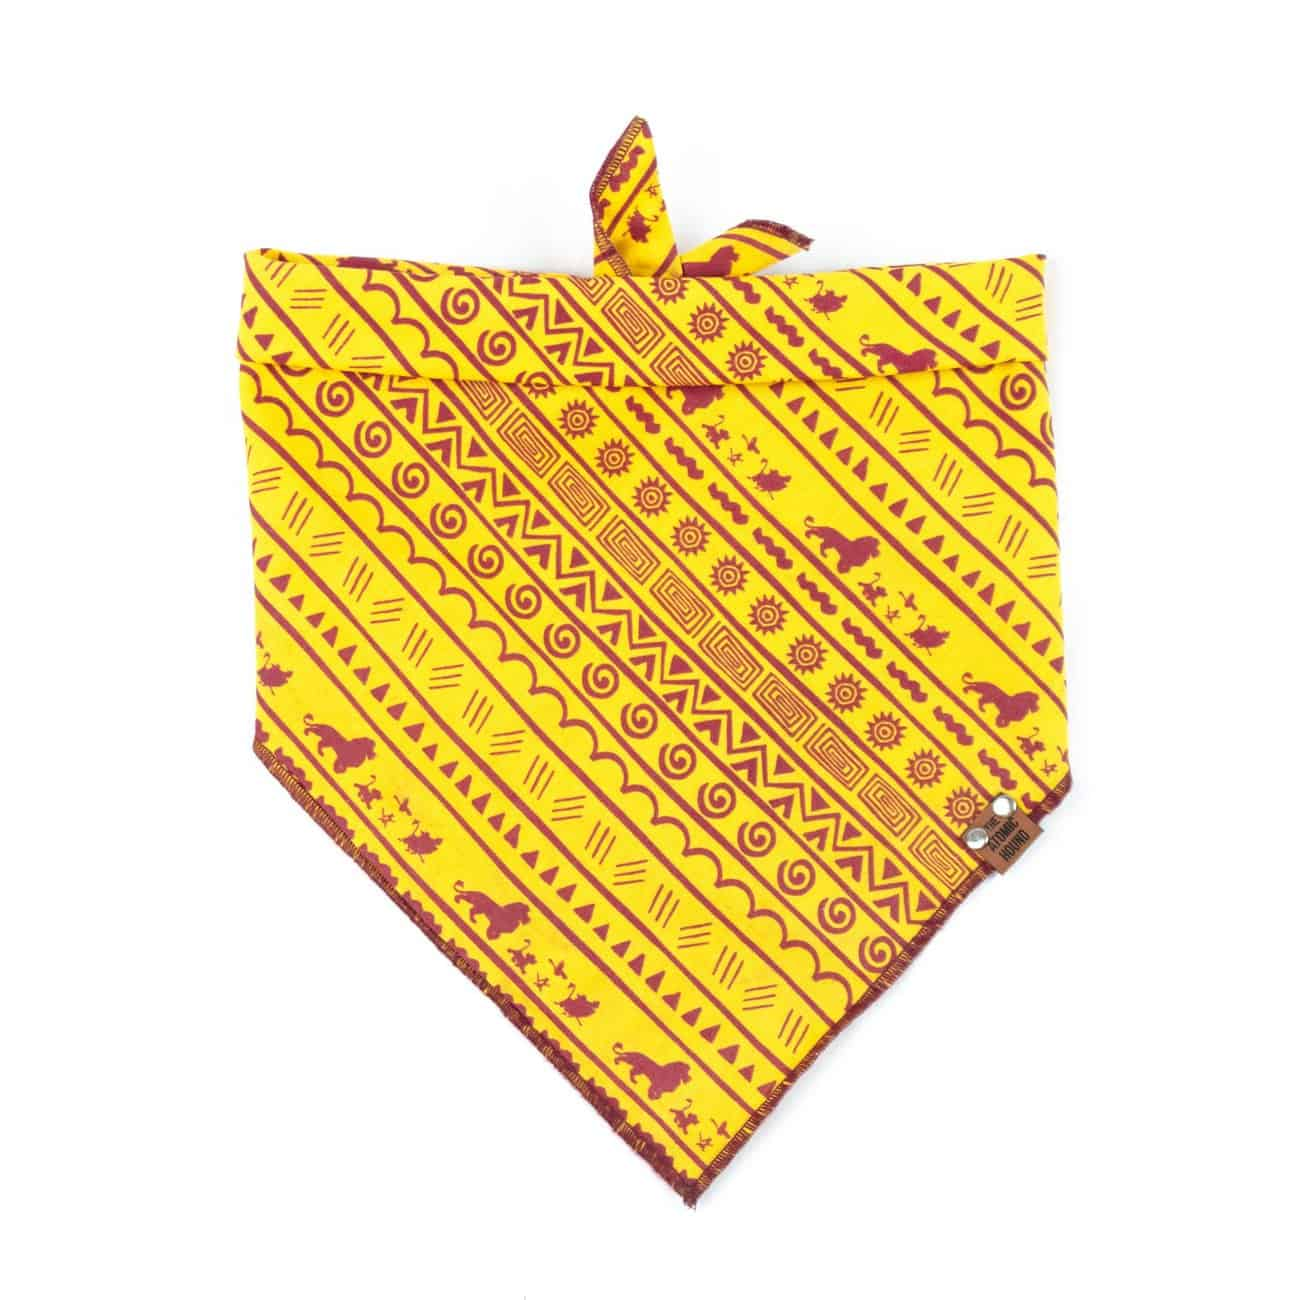 Yellow and maroon dog bandana with Lion King character pattern